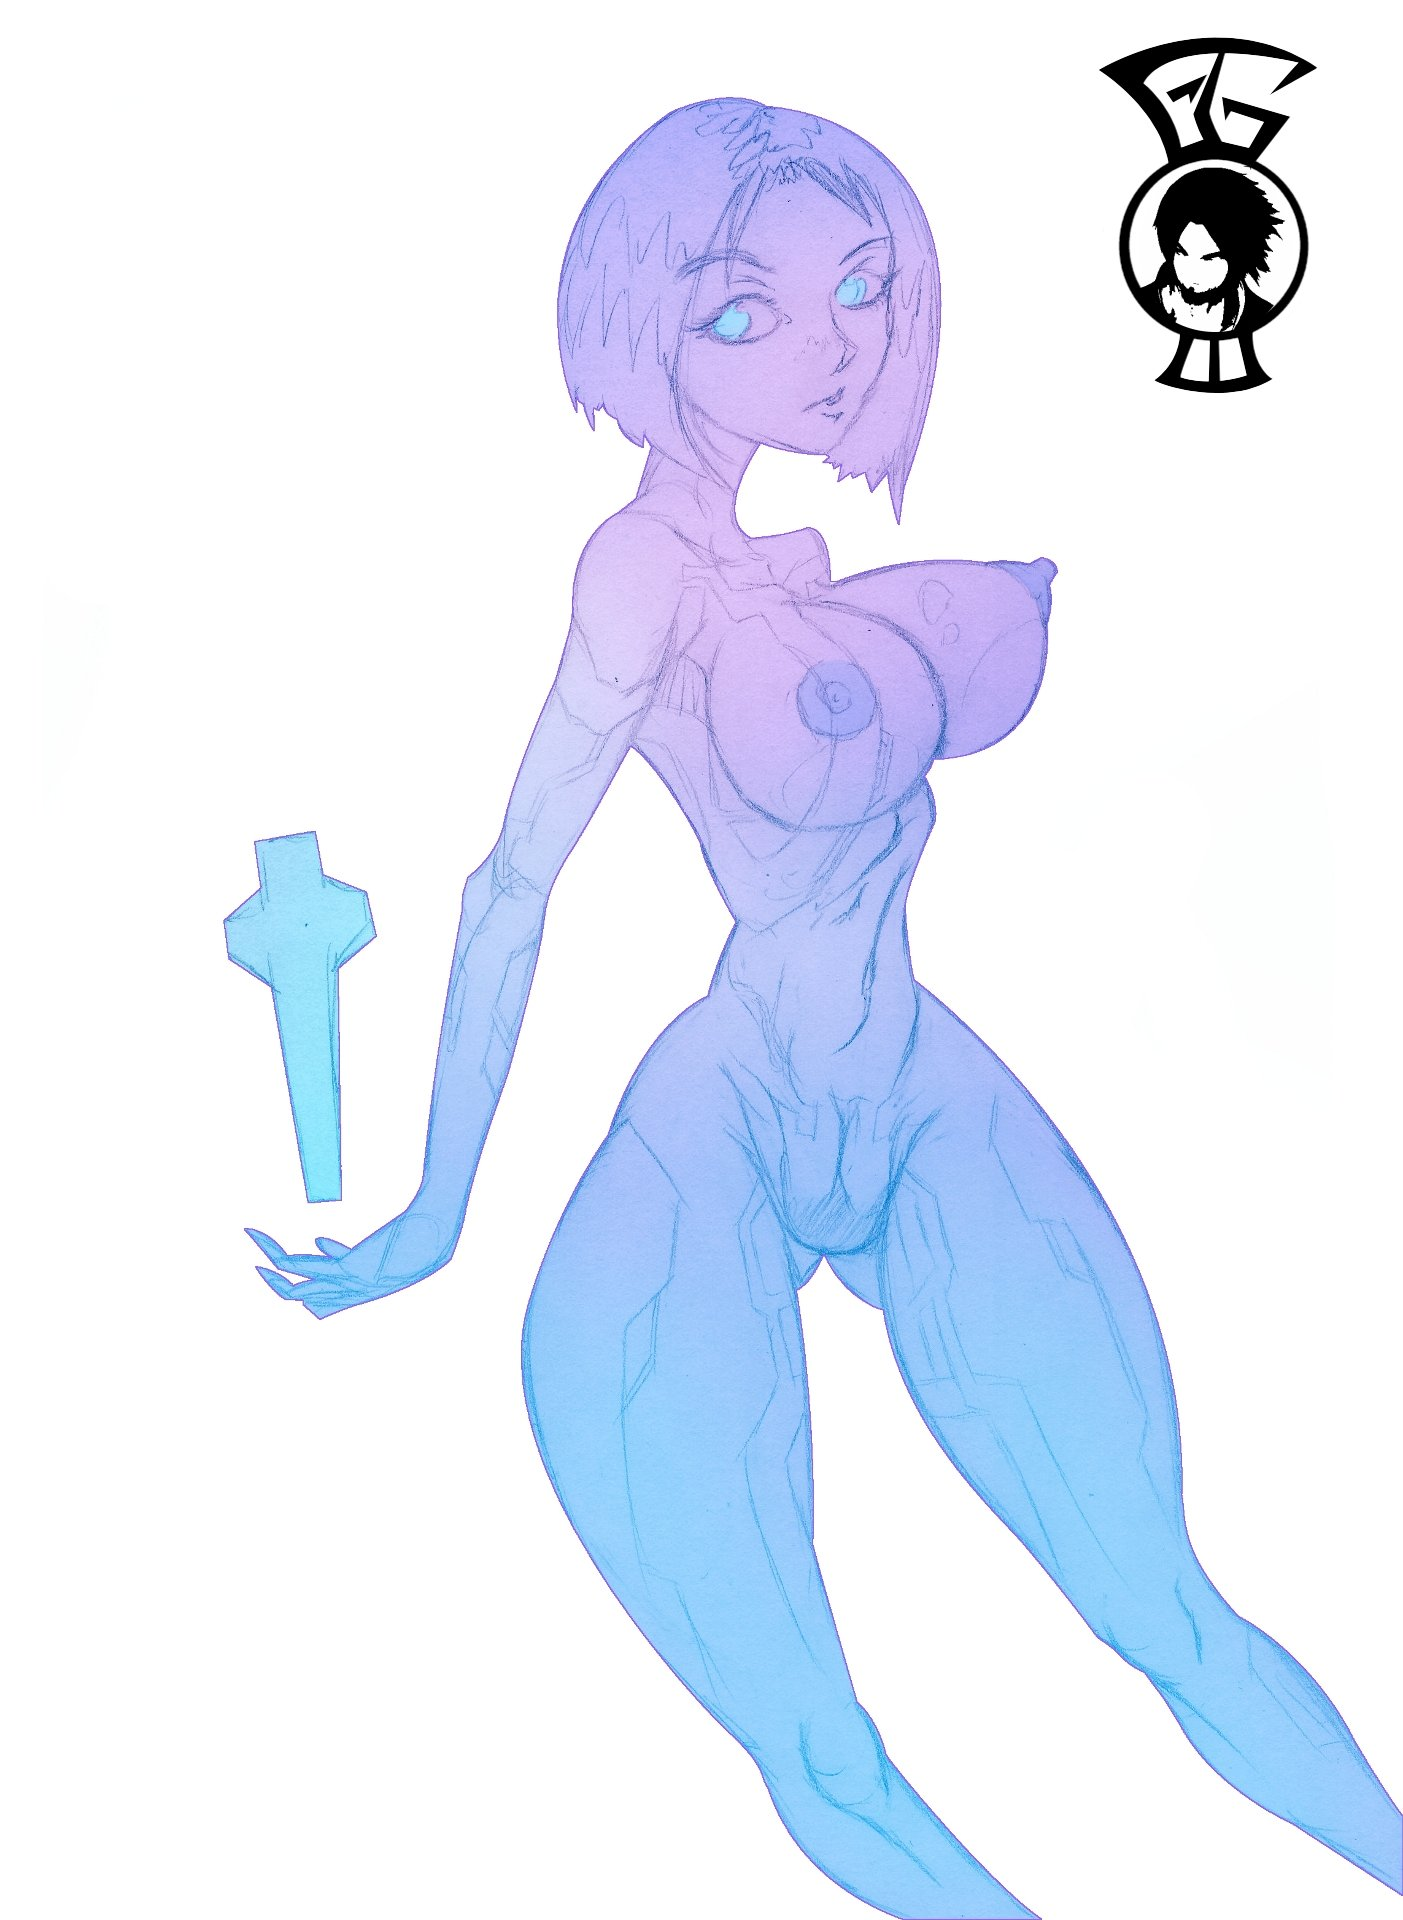 link-sexy-cortana-s-ass-porn-black